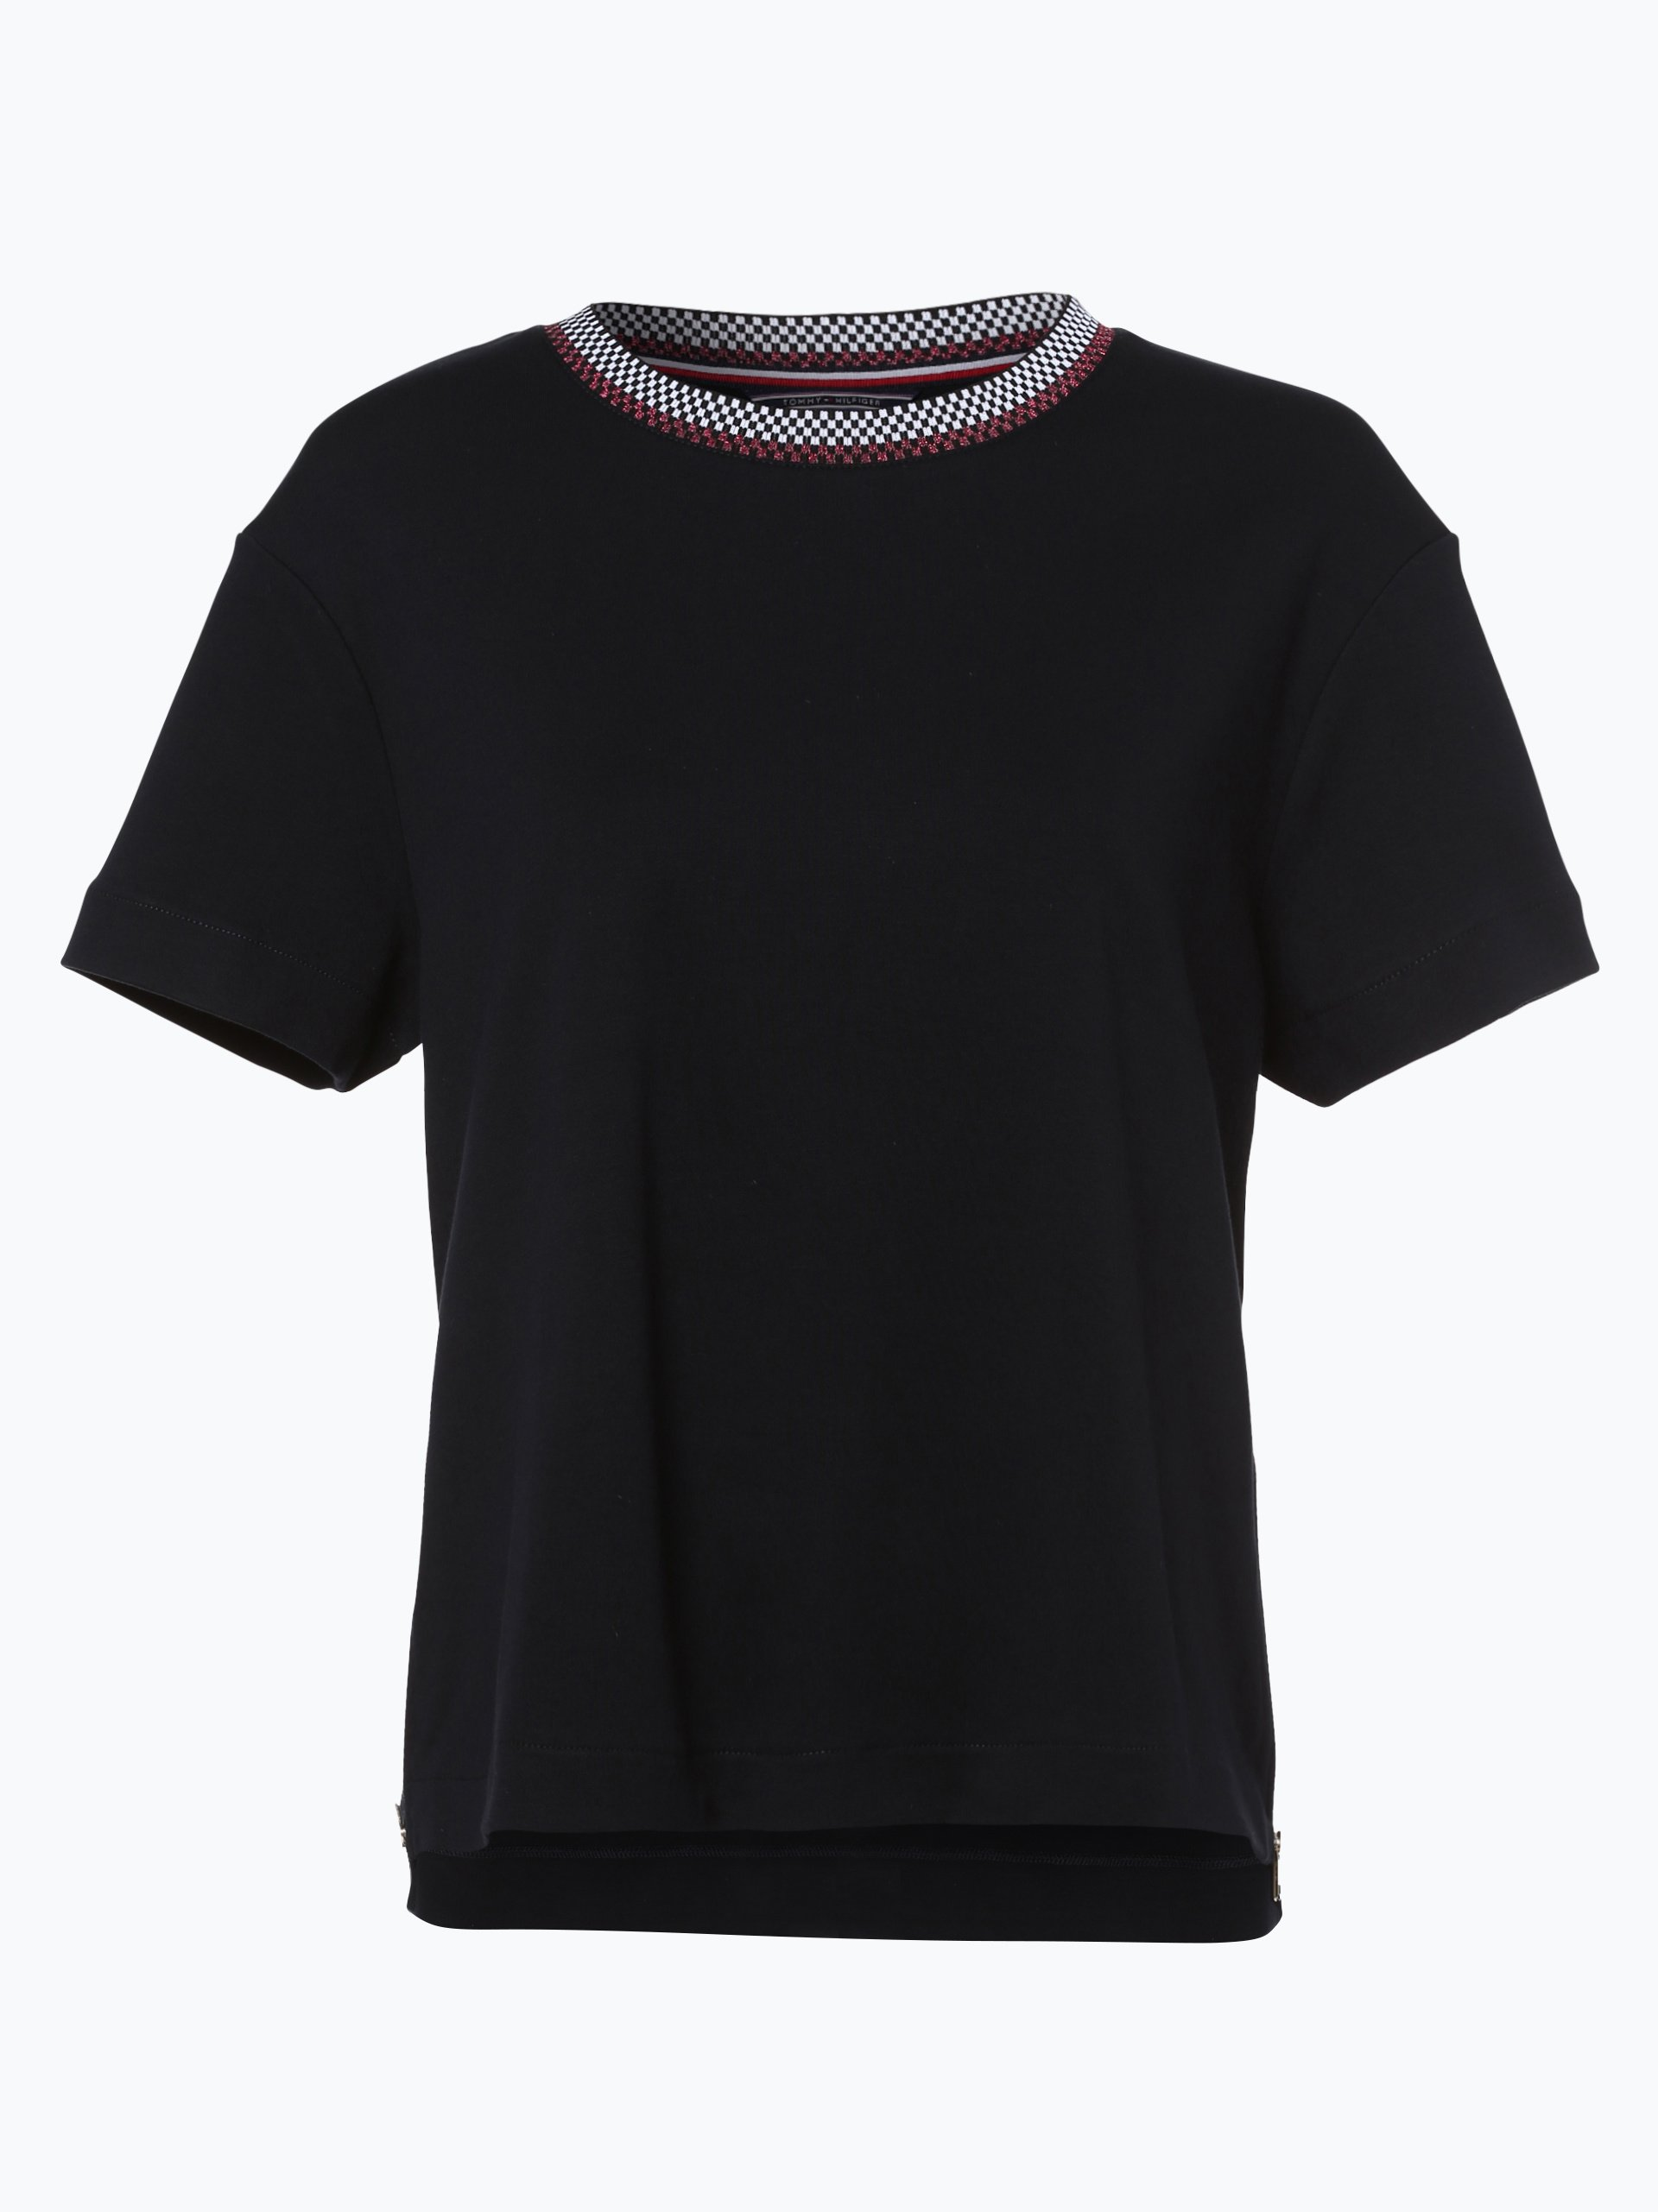 tommy hilfiger damen t shirt schwarz uni online kaufen peek und cloppenburg de. Black Bedroom Furniture Sets. Home Design Ideas